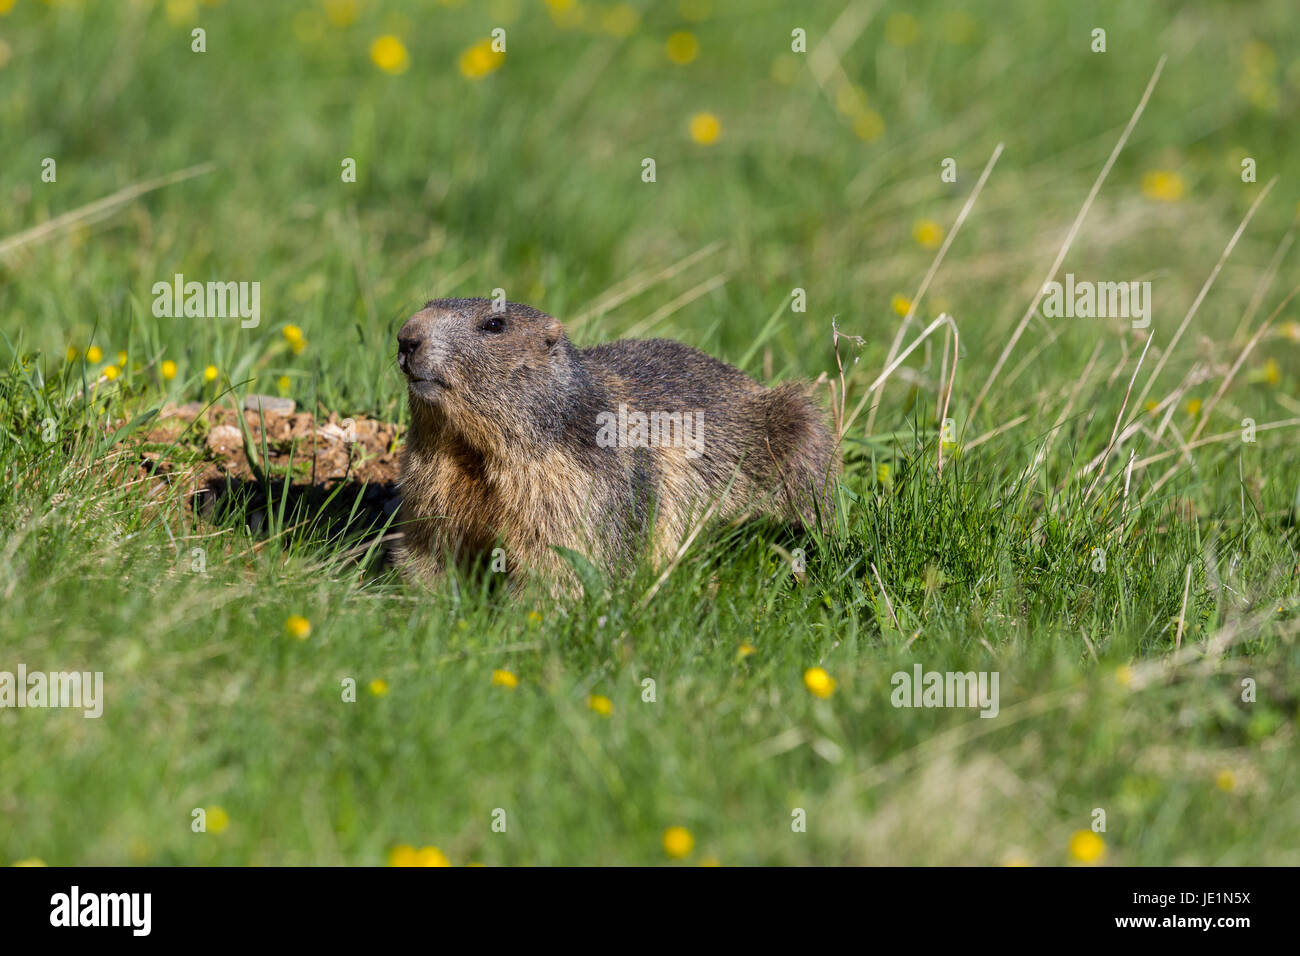 portrait of groundhog (Marmota monax) in grassland with yellow flowers - Stock Image